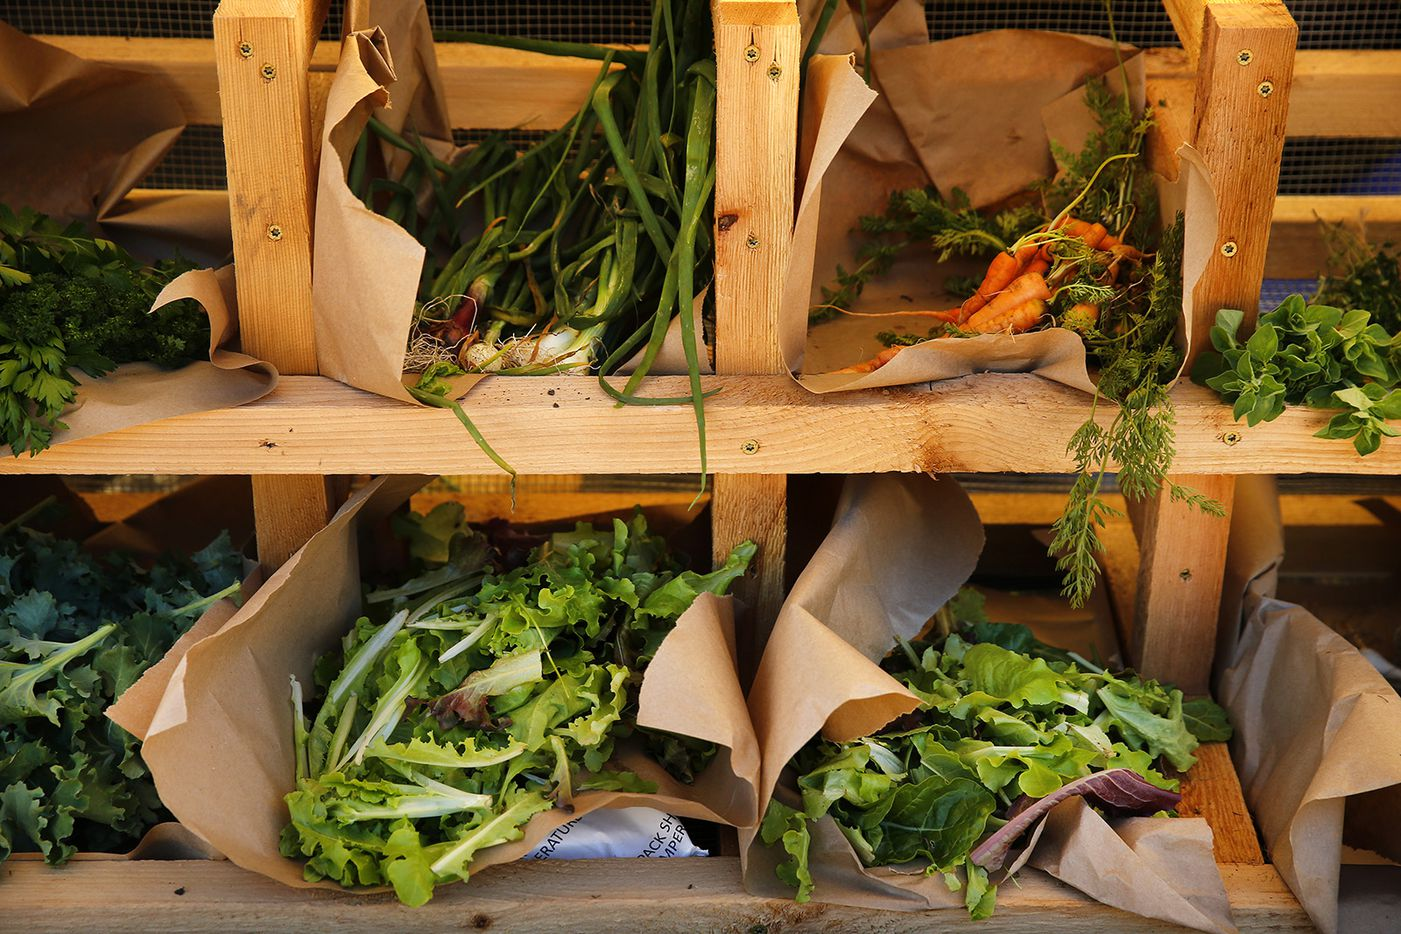 Stone's Throw Farm Co. sells a variety of vegetables at the Farmers Market which is open on Saturday mornings at The Trailhead at Clearfork in Fort Worth.